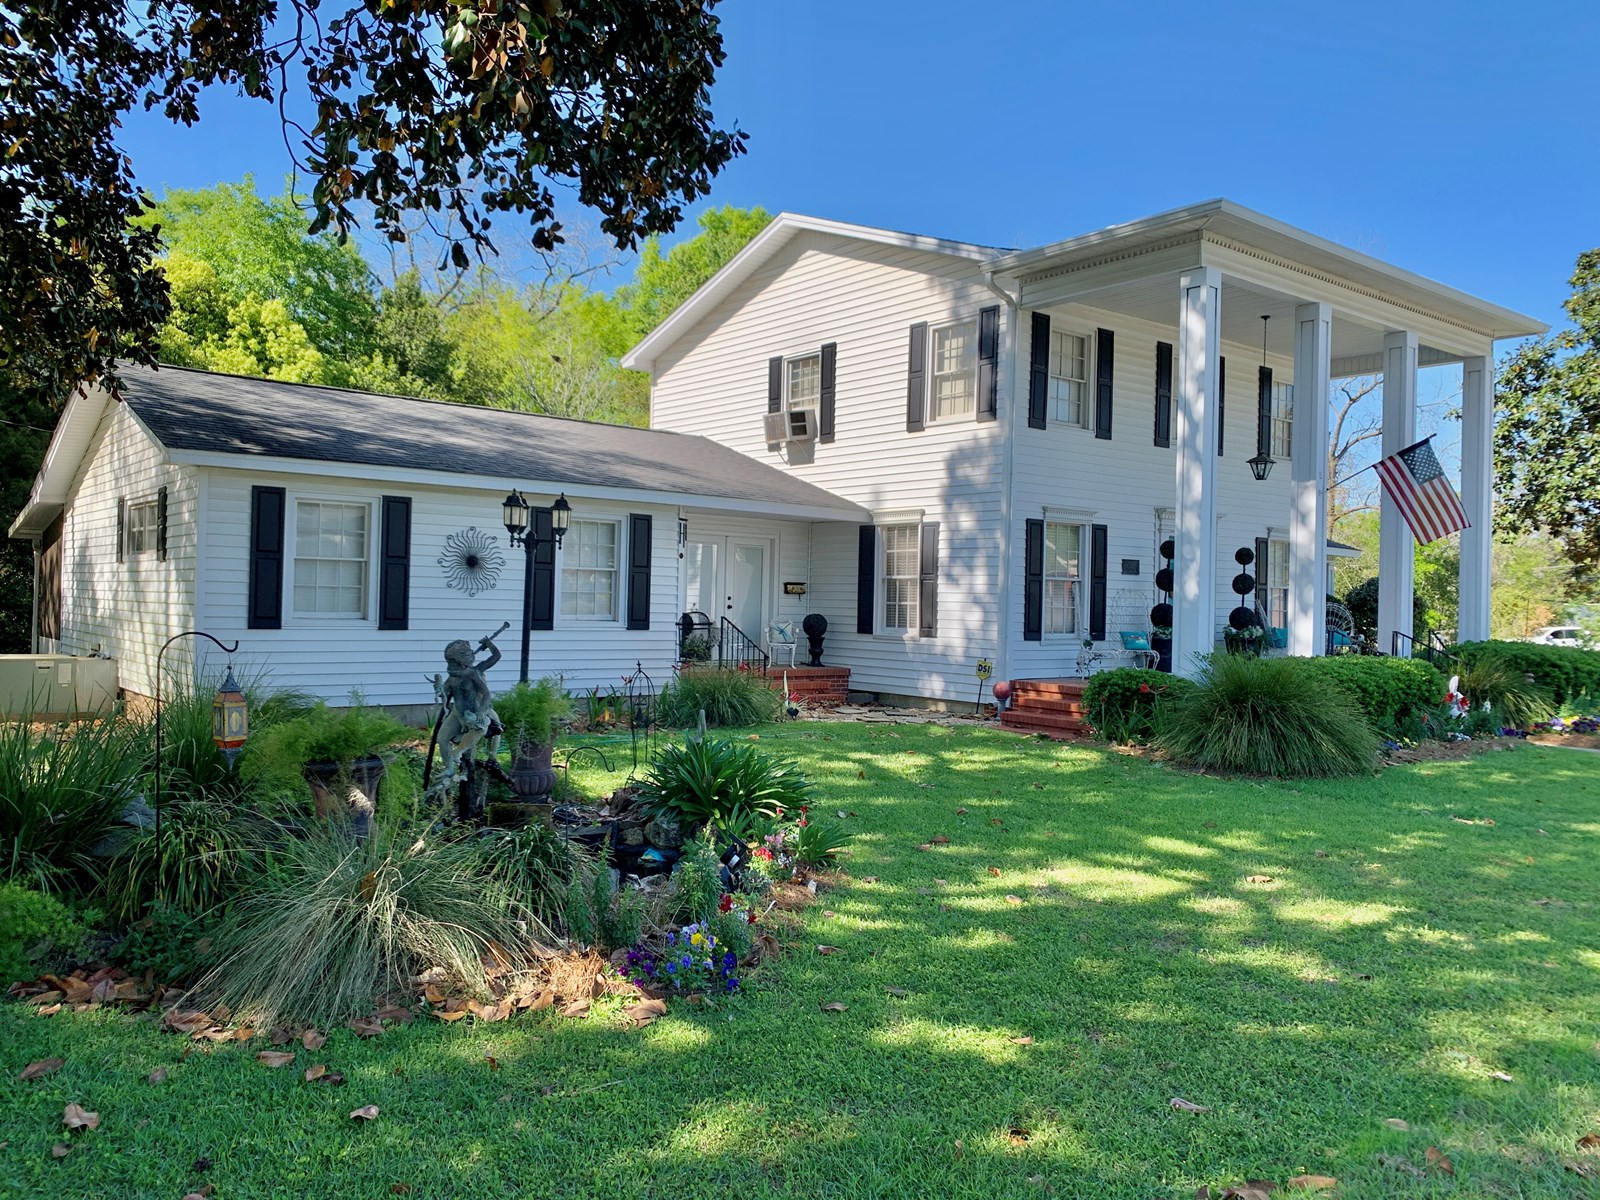 Southern Home Hartford Alabama - Historic Home in Smalltown